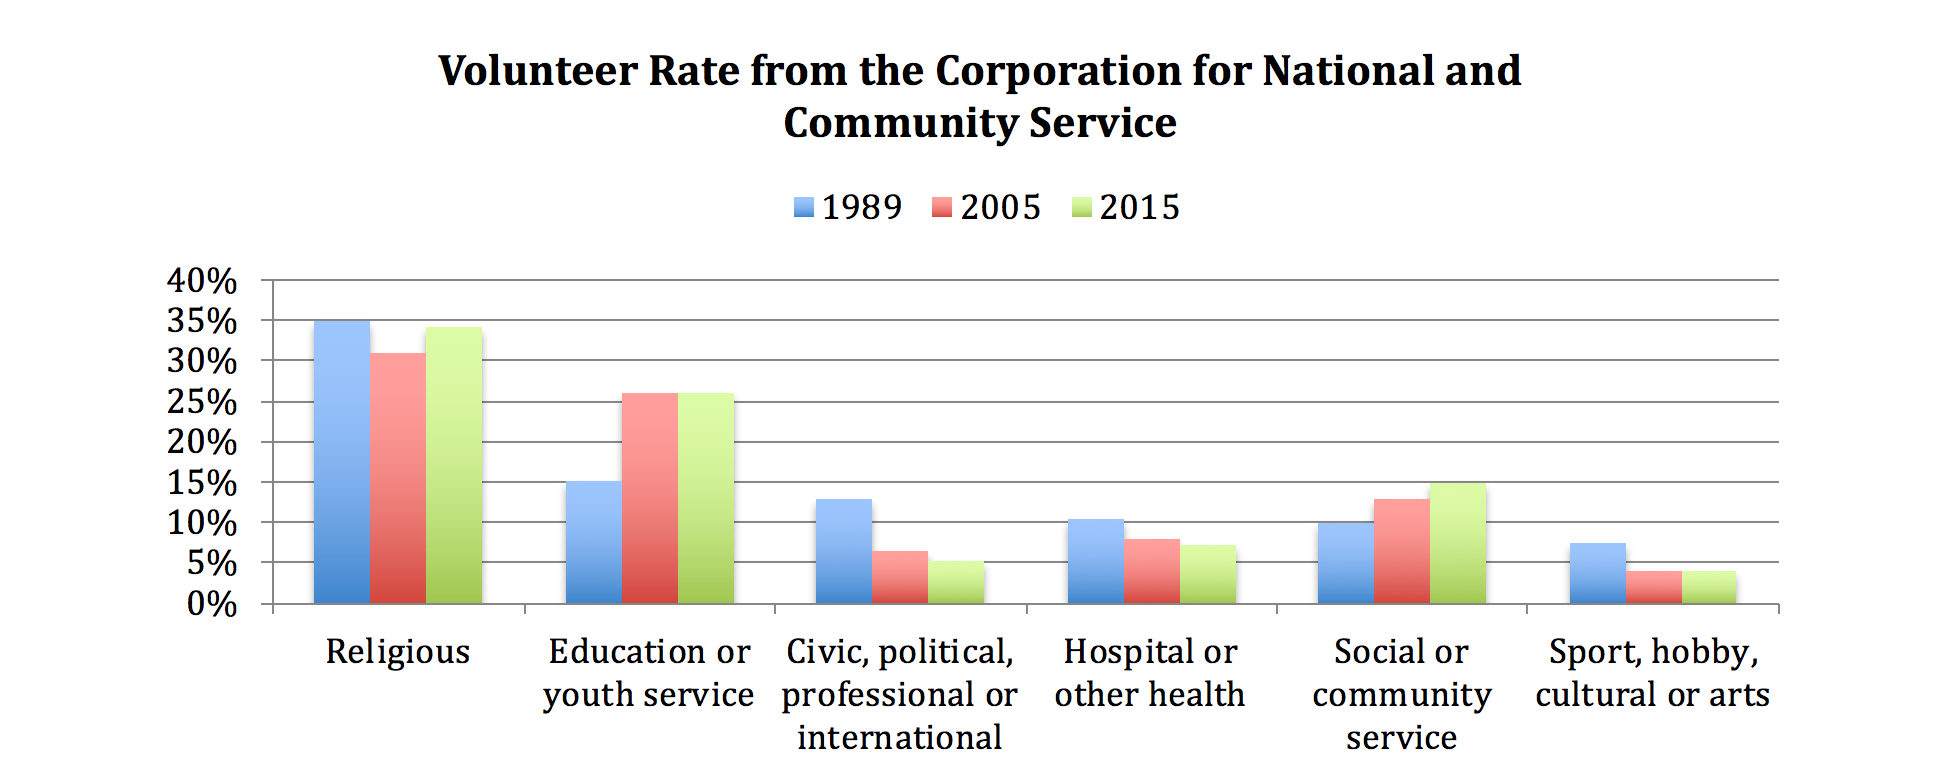 Figure 2: Volunteer Rate from the Corporation for National and Community Service